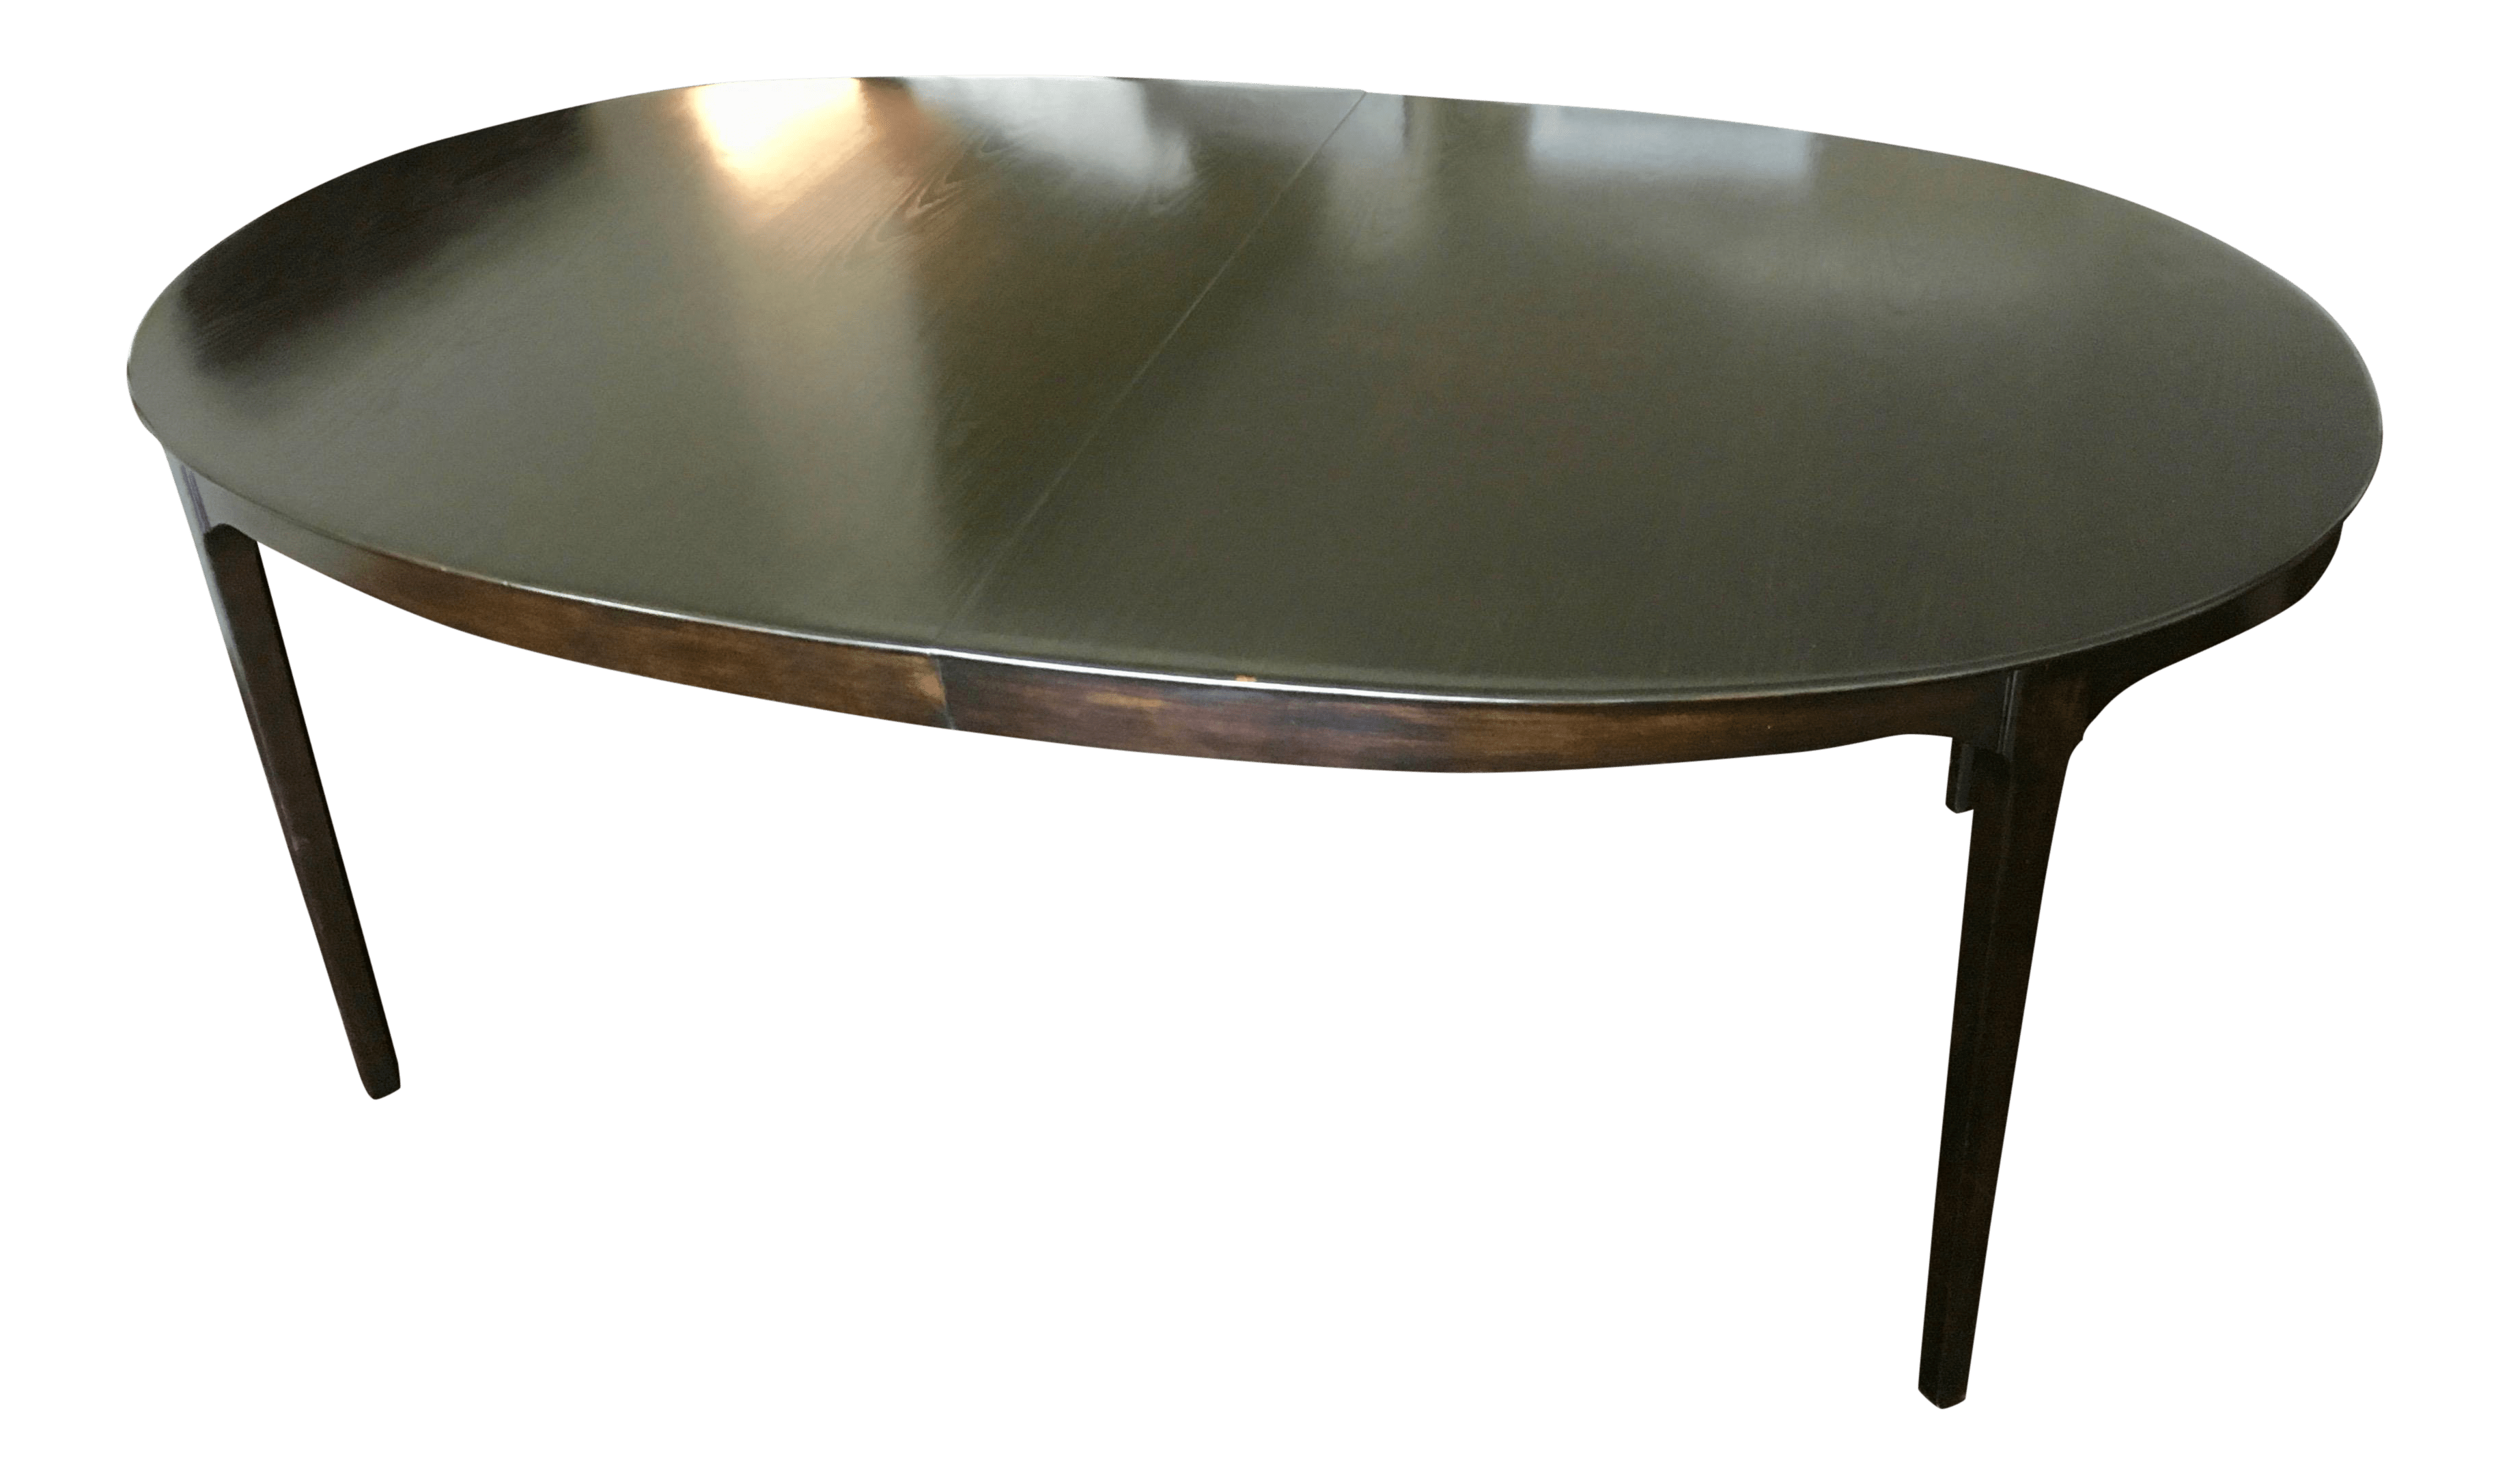 Classic Table Shapes Mid Century Modern Barbara Barry For Baker Mcguire S Collection Classic Silhoutte Dining Room Table